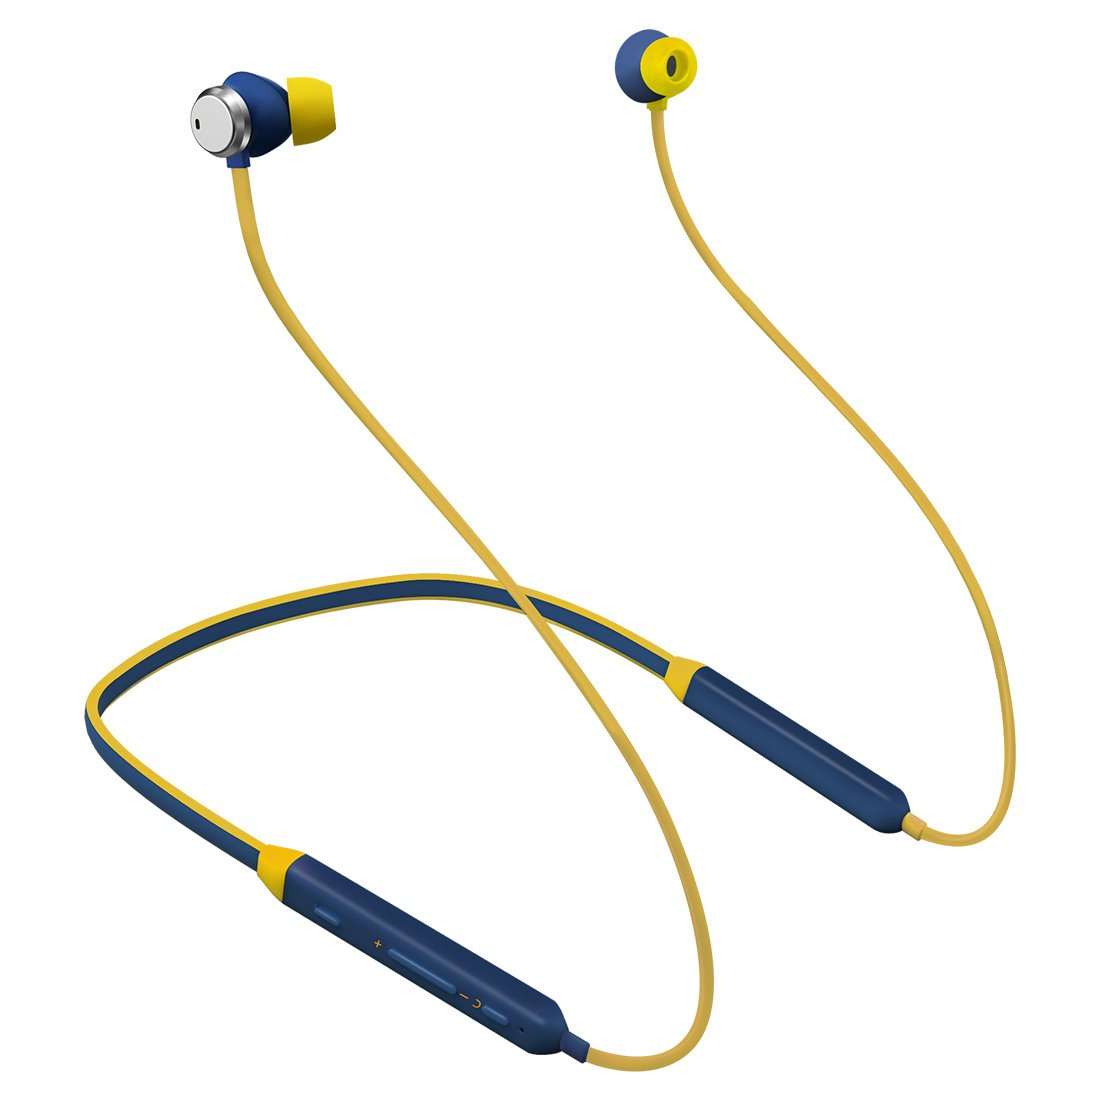 d41cdd20c22 Bluedio TN (Turbine) Active Noise Cancelling Earbuds Neckband Earphones, Bluetooth  4.2 Wireless Sports ...